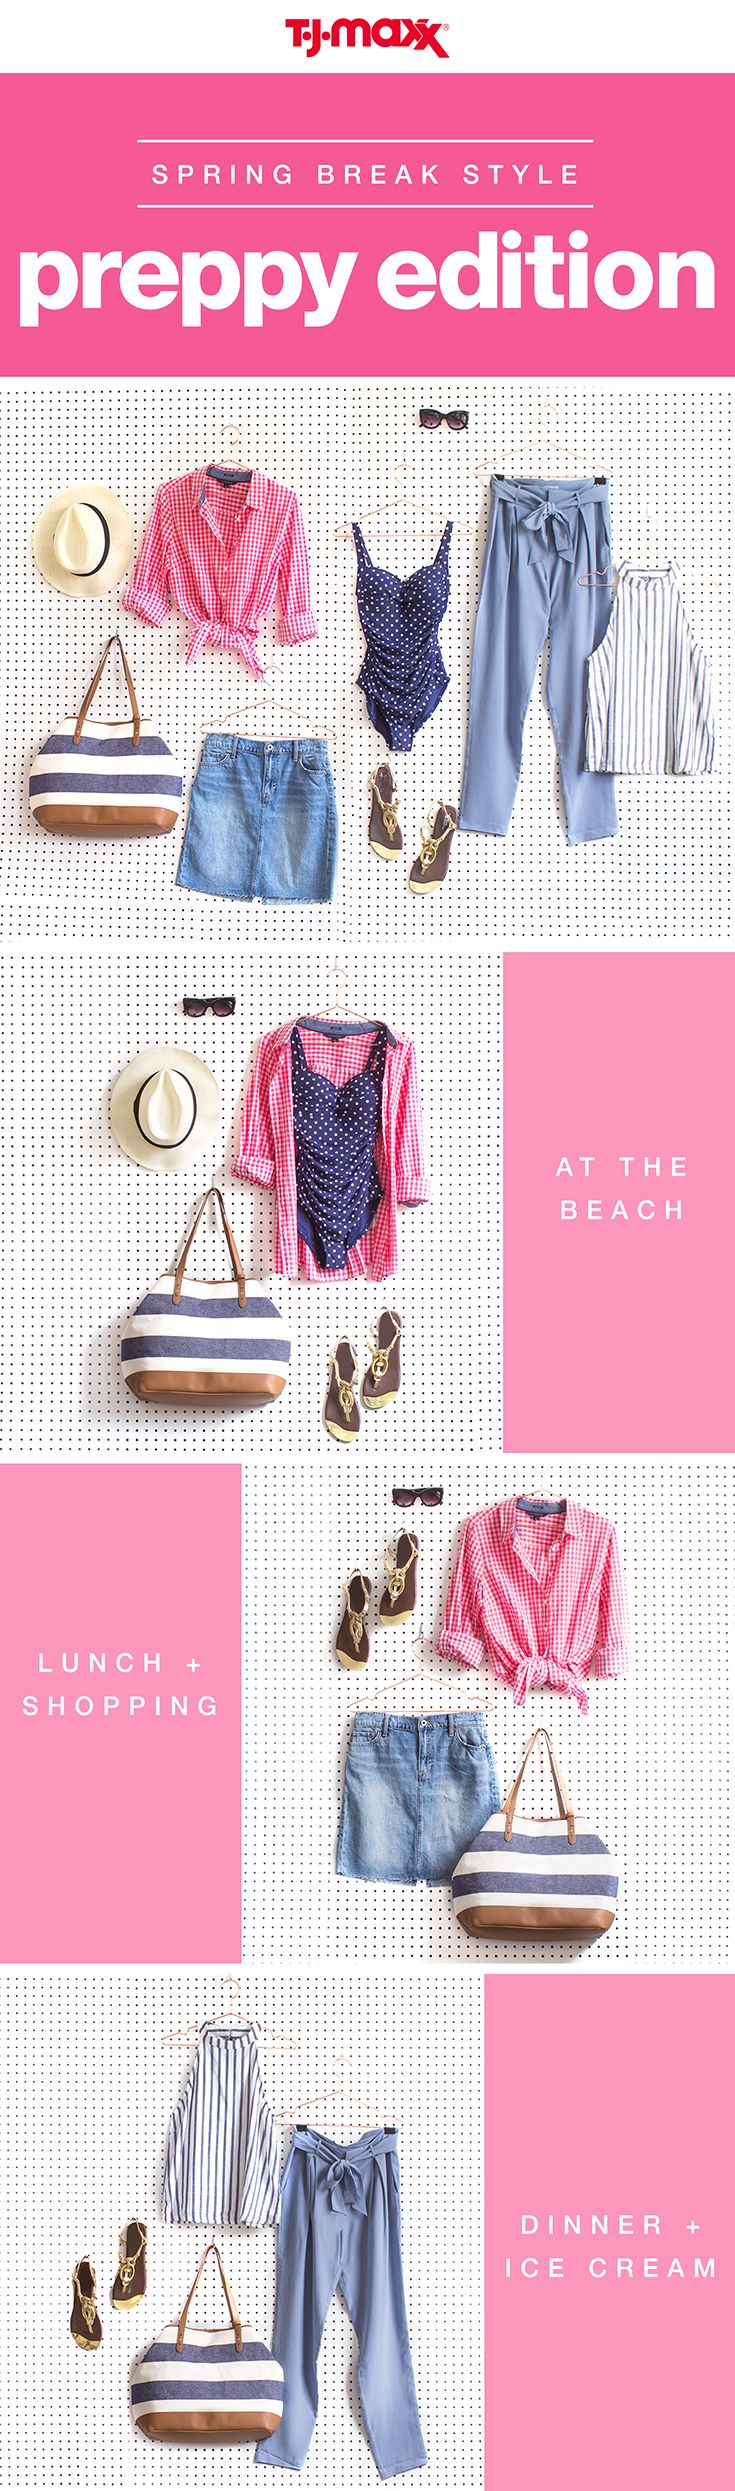 Packing for a lake or beach vacation? Blue and white nautical stripes are a must. Create a capsule wardrobe with interchangeable tops and bottoms that can be dressed down for days by the water, and dressed up for evenings out. Find more getaway essentials at your local T.J.Maxx and tjmaxx.com.